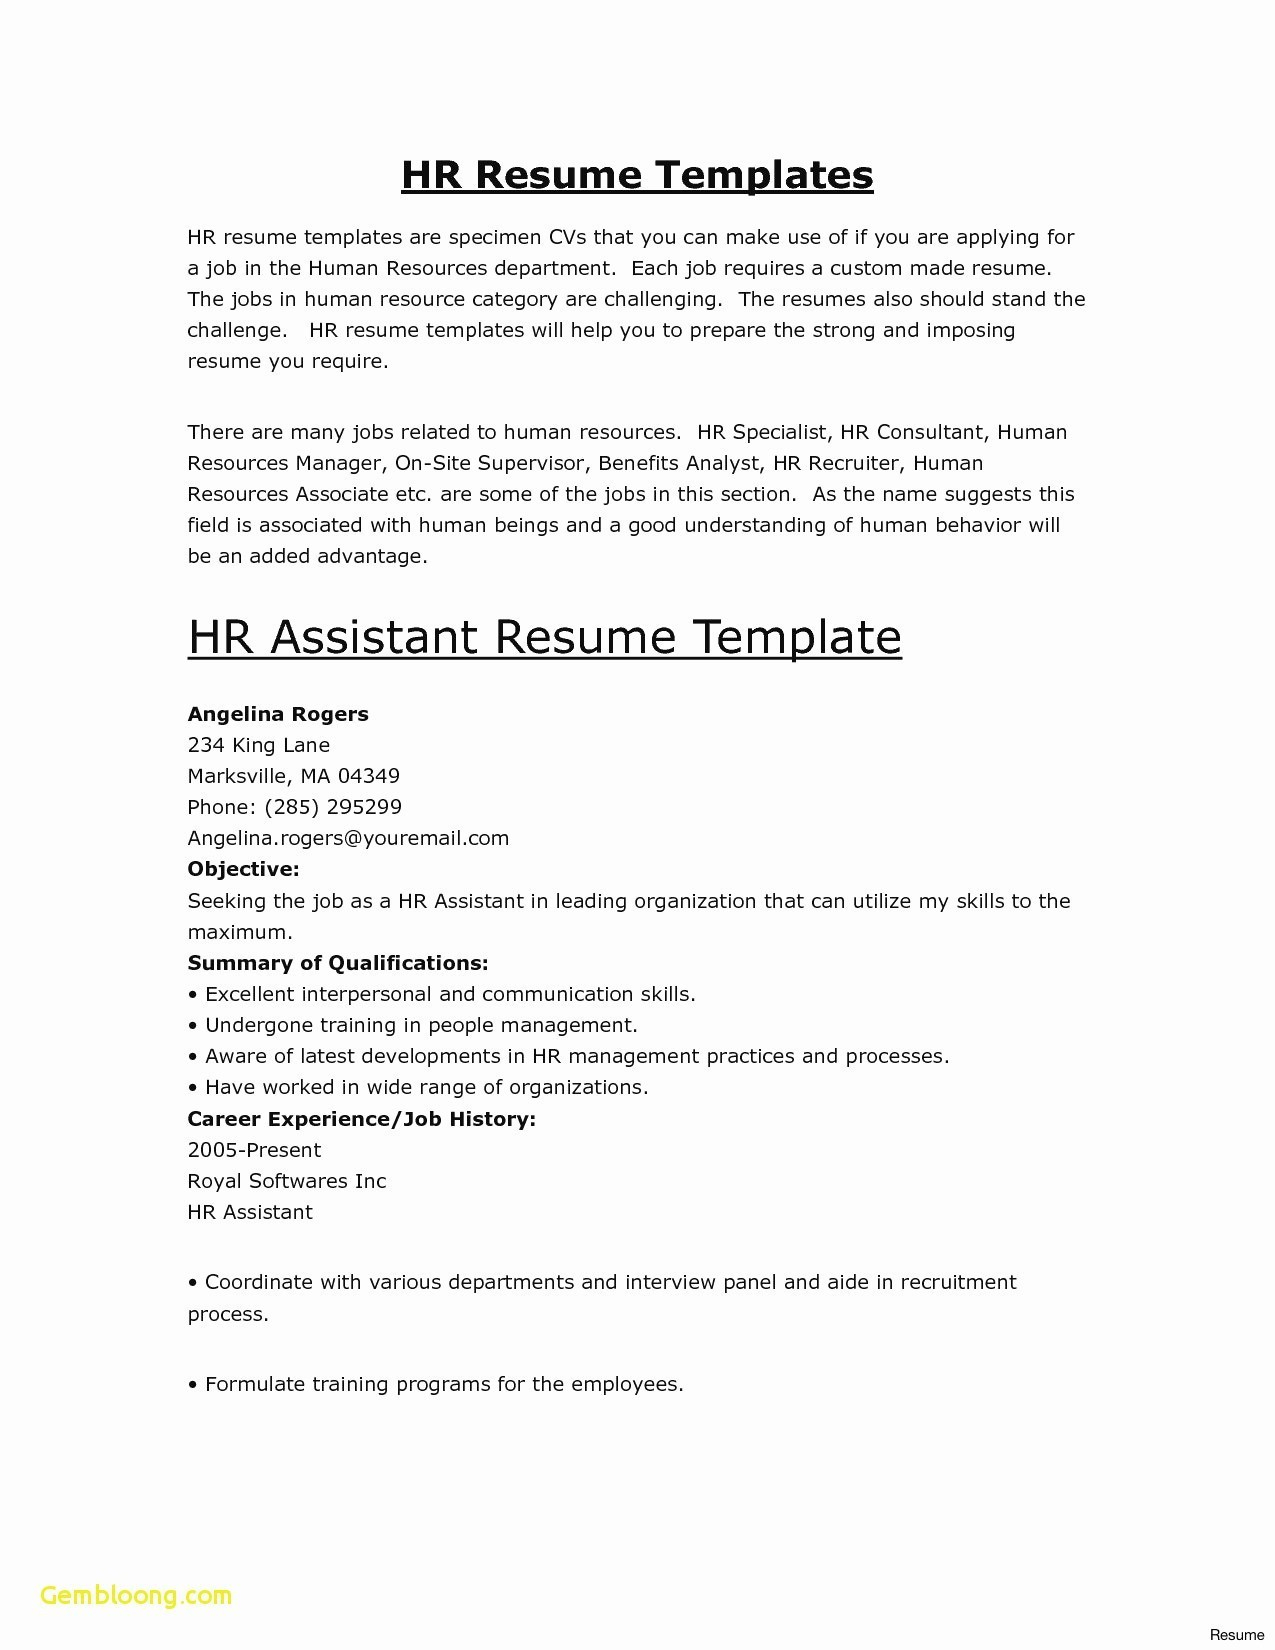 13 headshot resume template ideas